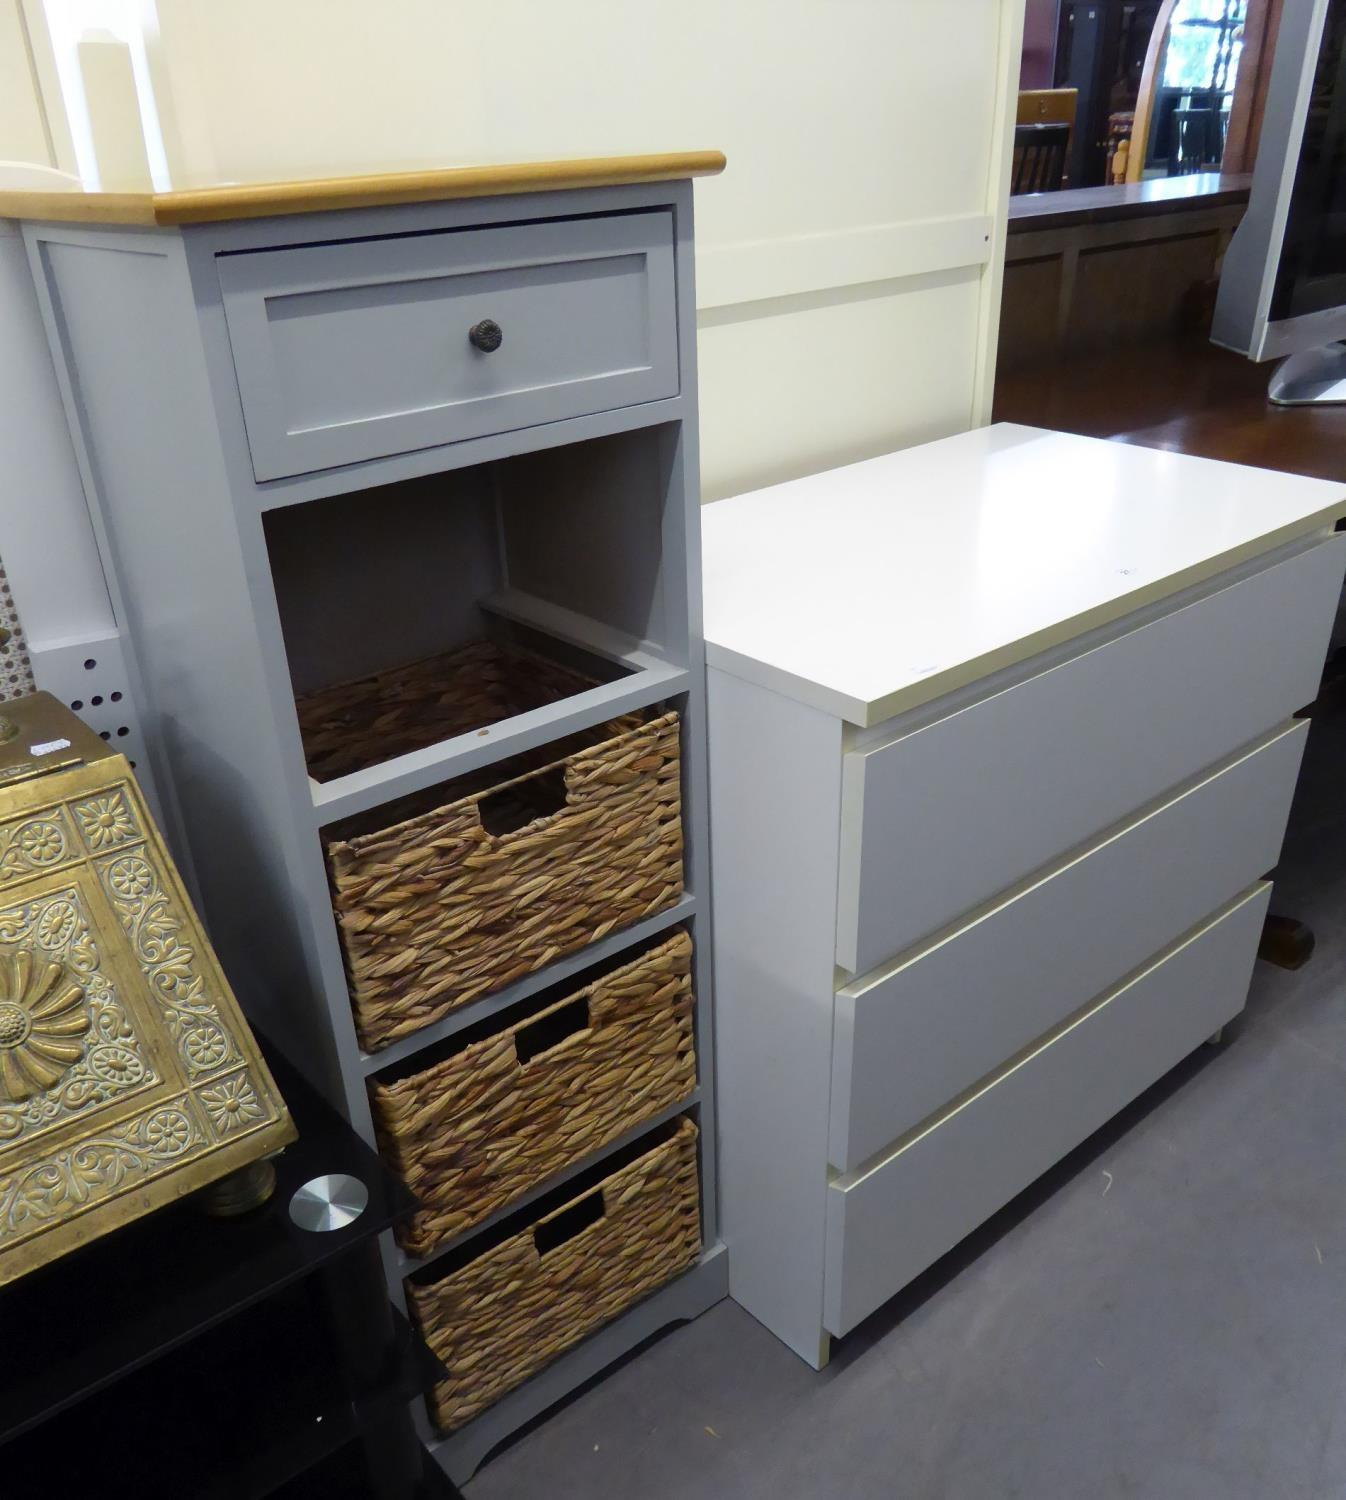 Lot 27 - MODERN WHITE THREE DRAWER CHEST AND A GREY PAINTED NARROW TALL CHEST WITH WICKER DRAWERS (2)